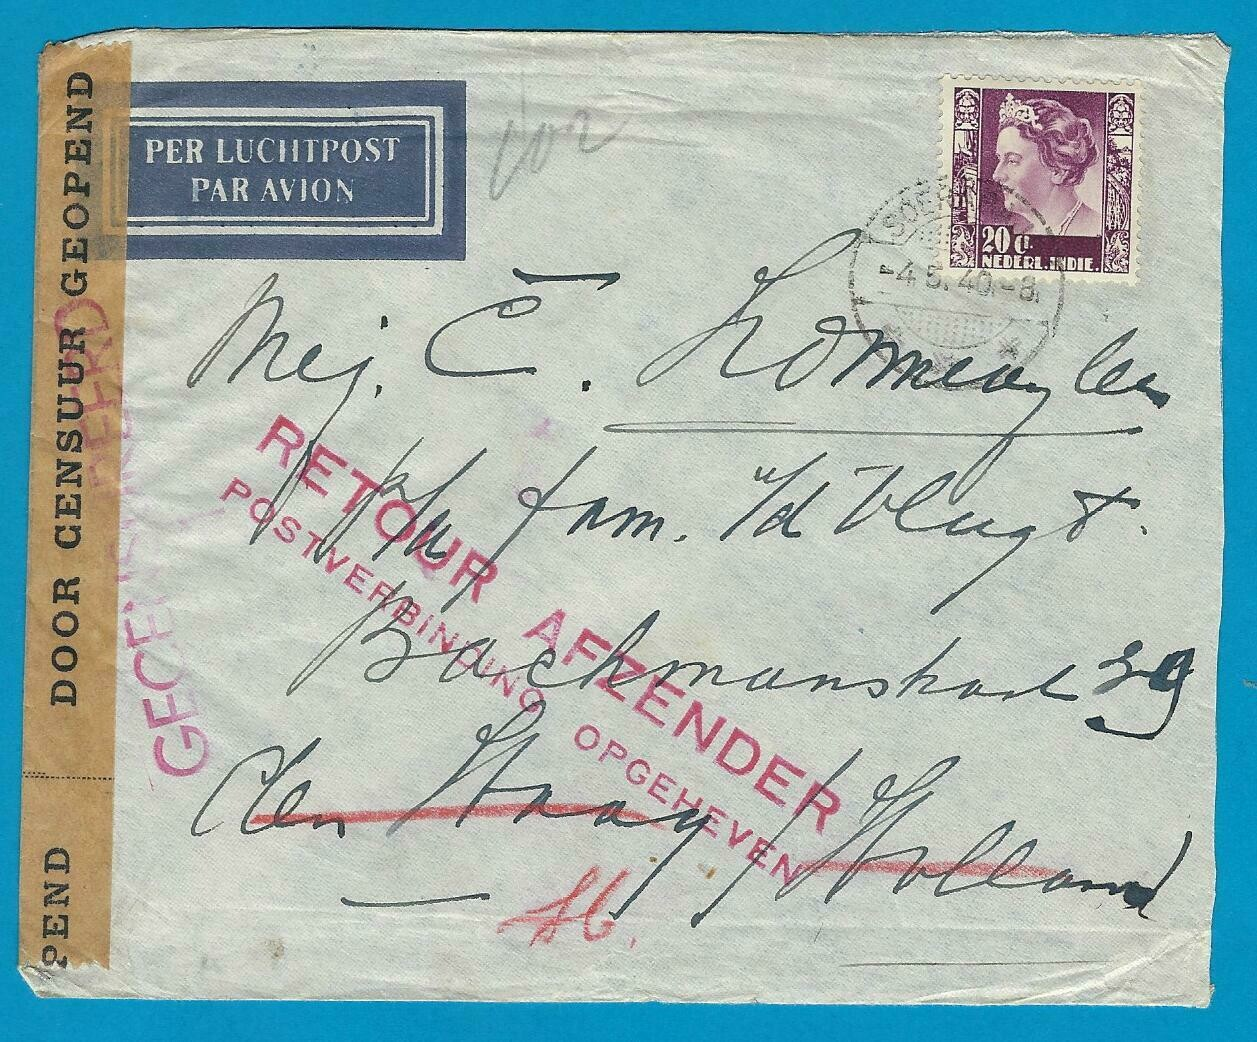 NETHERLANDS EAST INDIES air cover 1940 Soerabaja service suspended